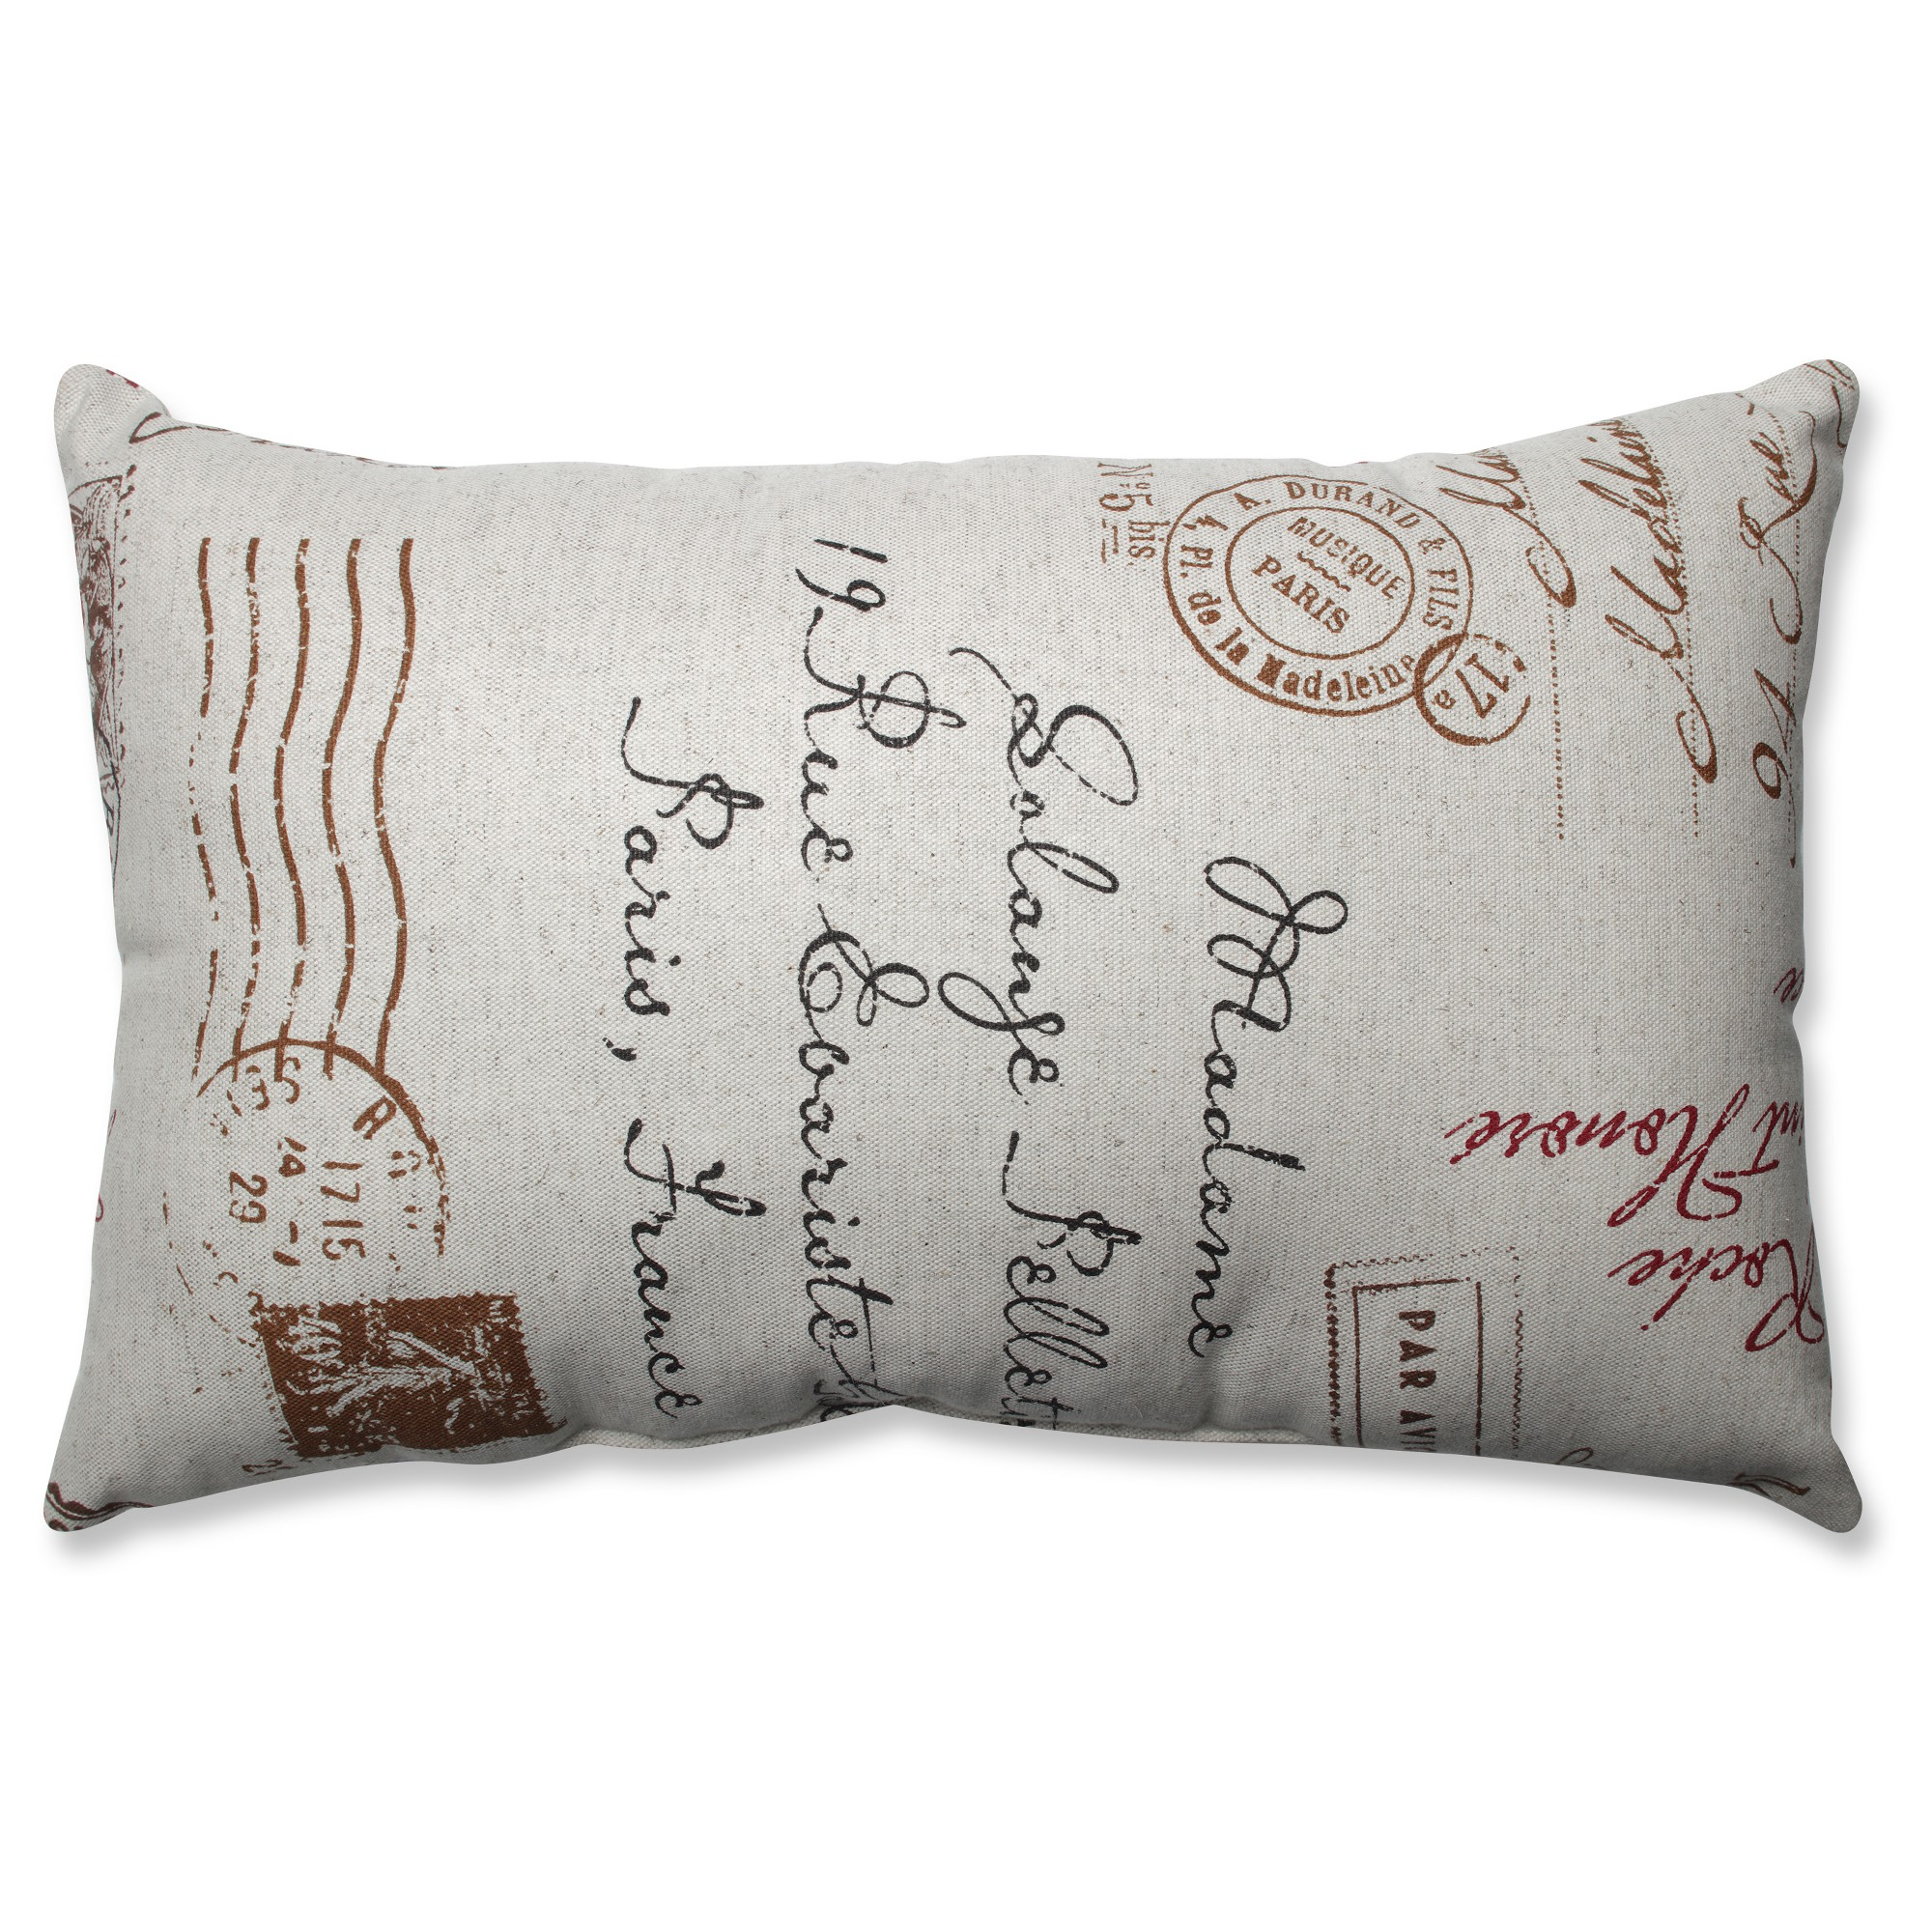 throw multicolor ink pillows embroidered of fur ivy neve elegant key pillow cheap